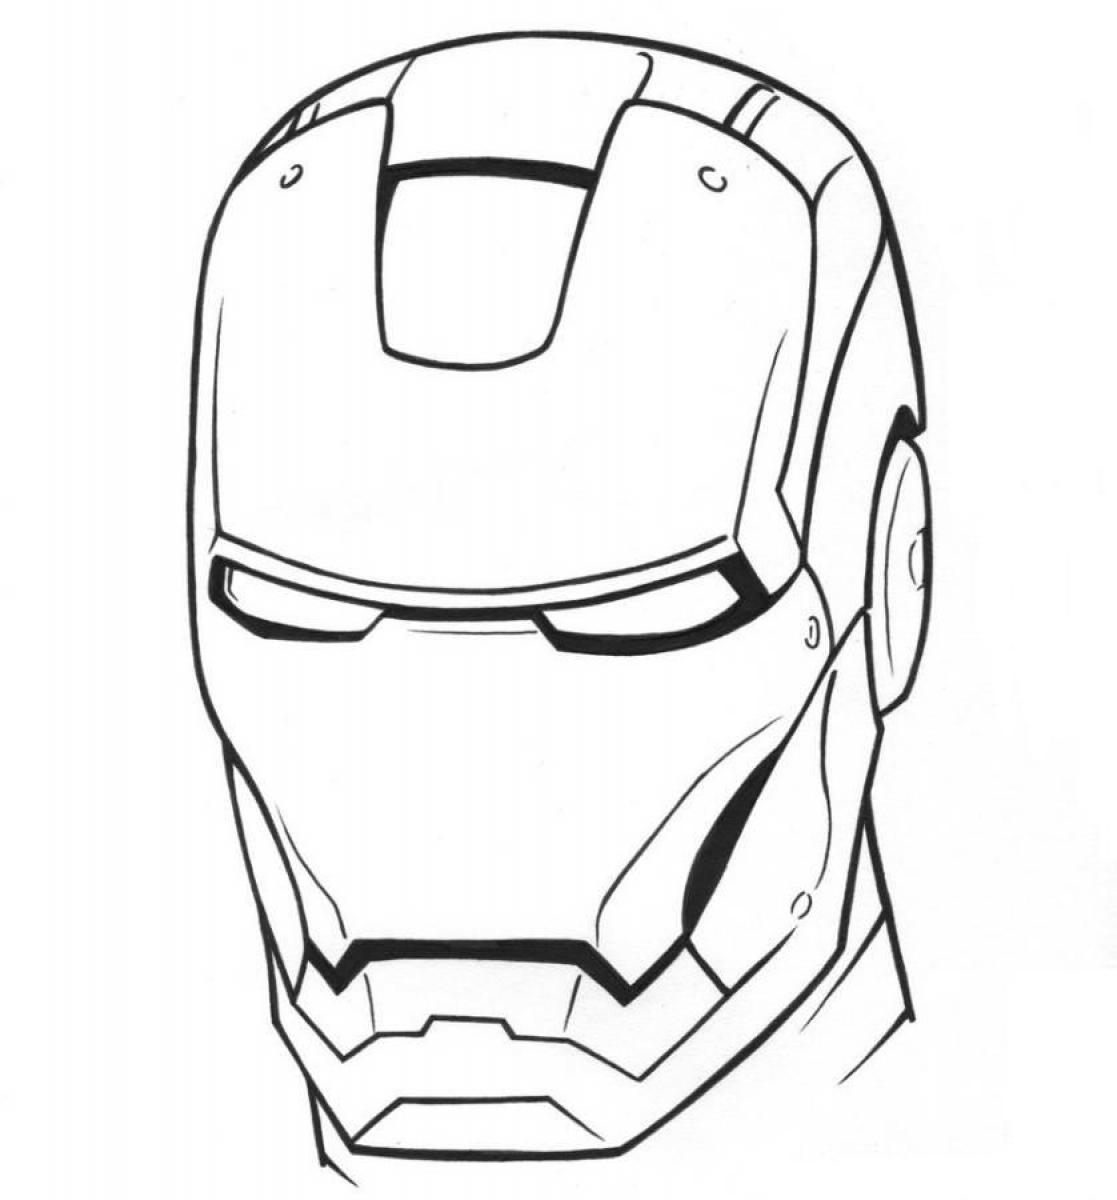 Iron Man Coloring Book Games : Pics photos heroes iron man coloring pages